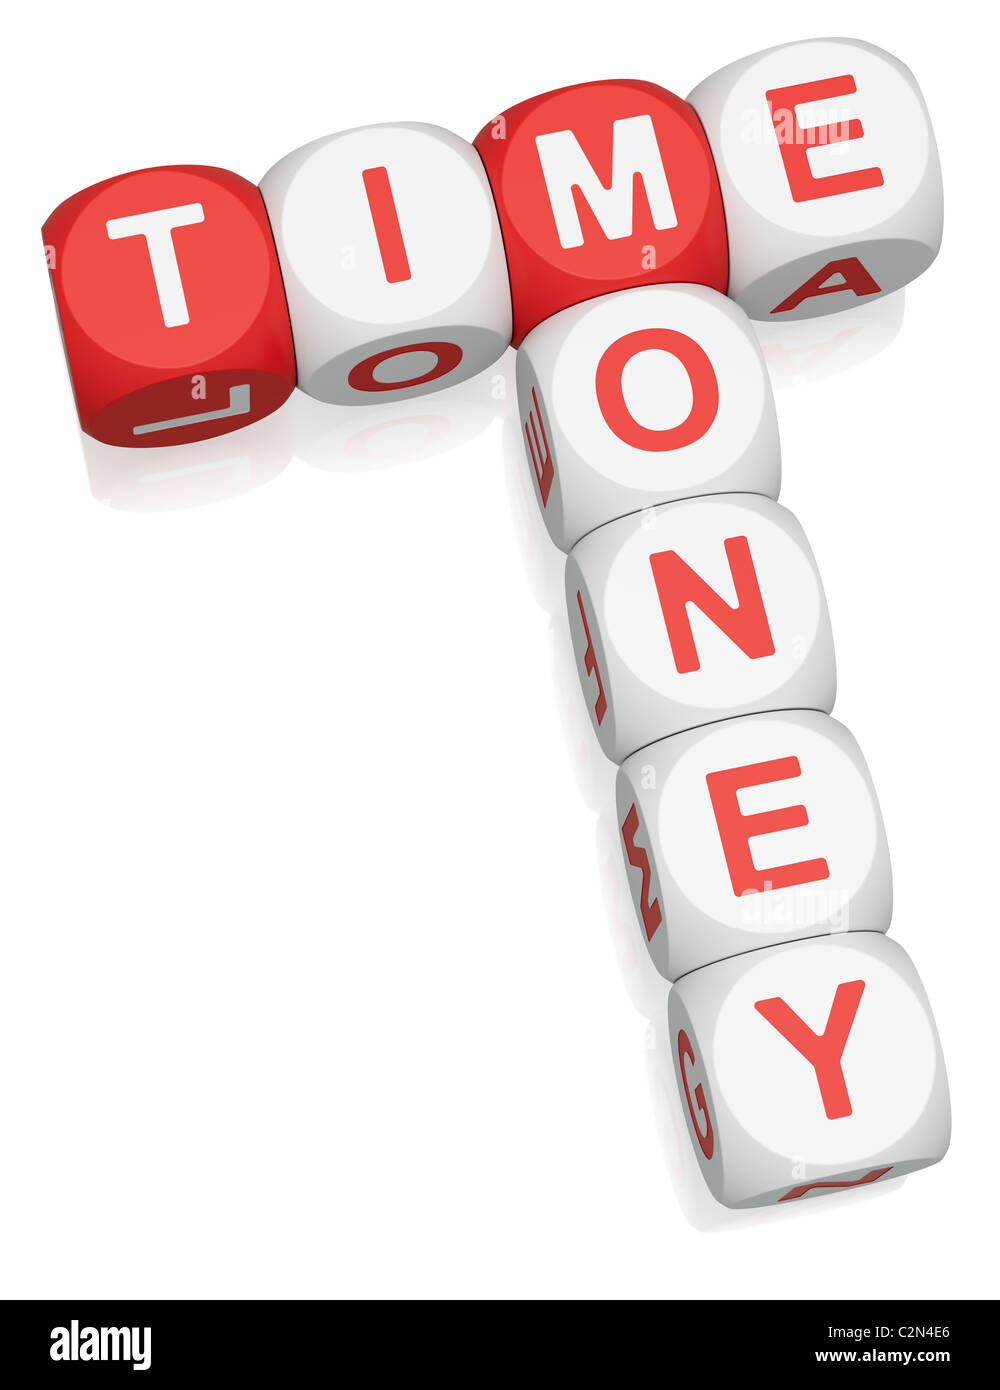 Time Is Money Stock Photos & Time Is Money Stock Images - Alamy